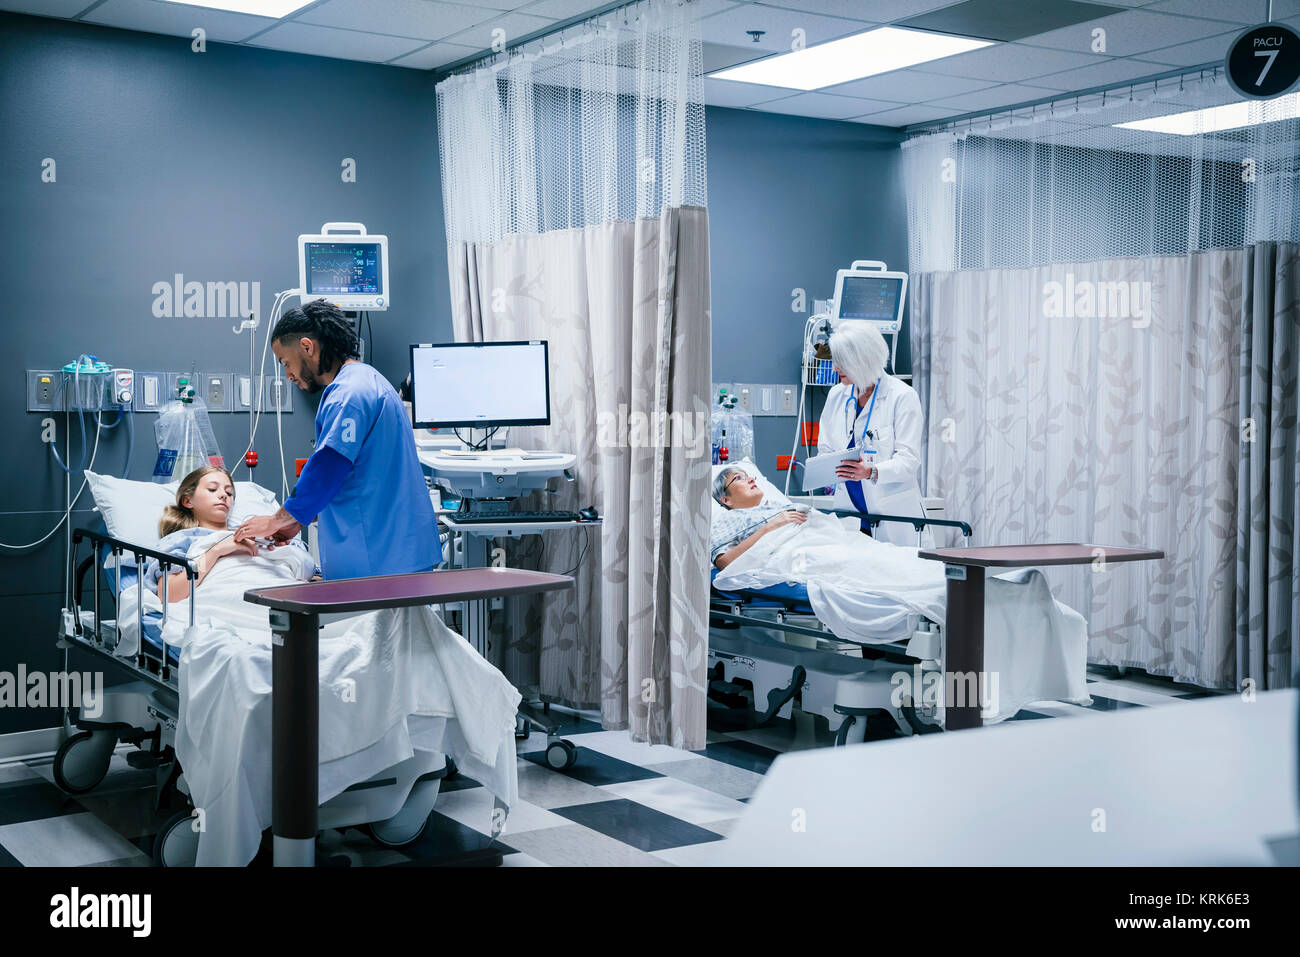 Doctor and nurse with patients in hospital - Stock Image